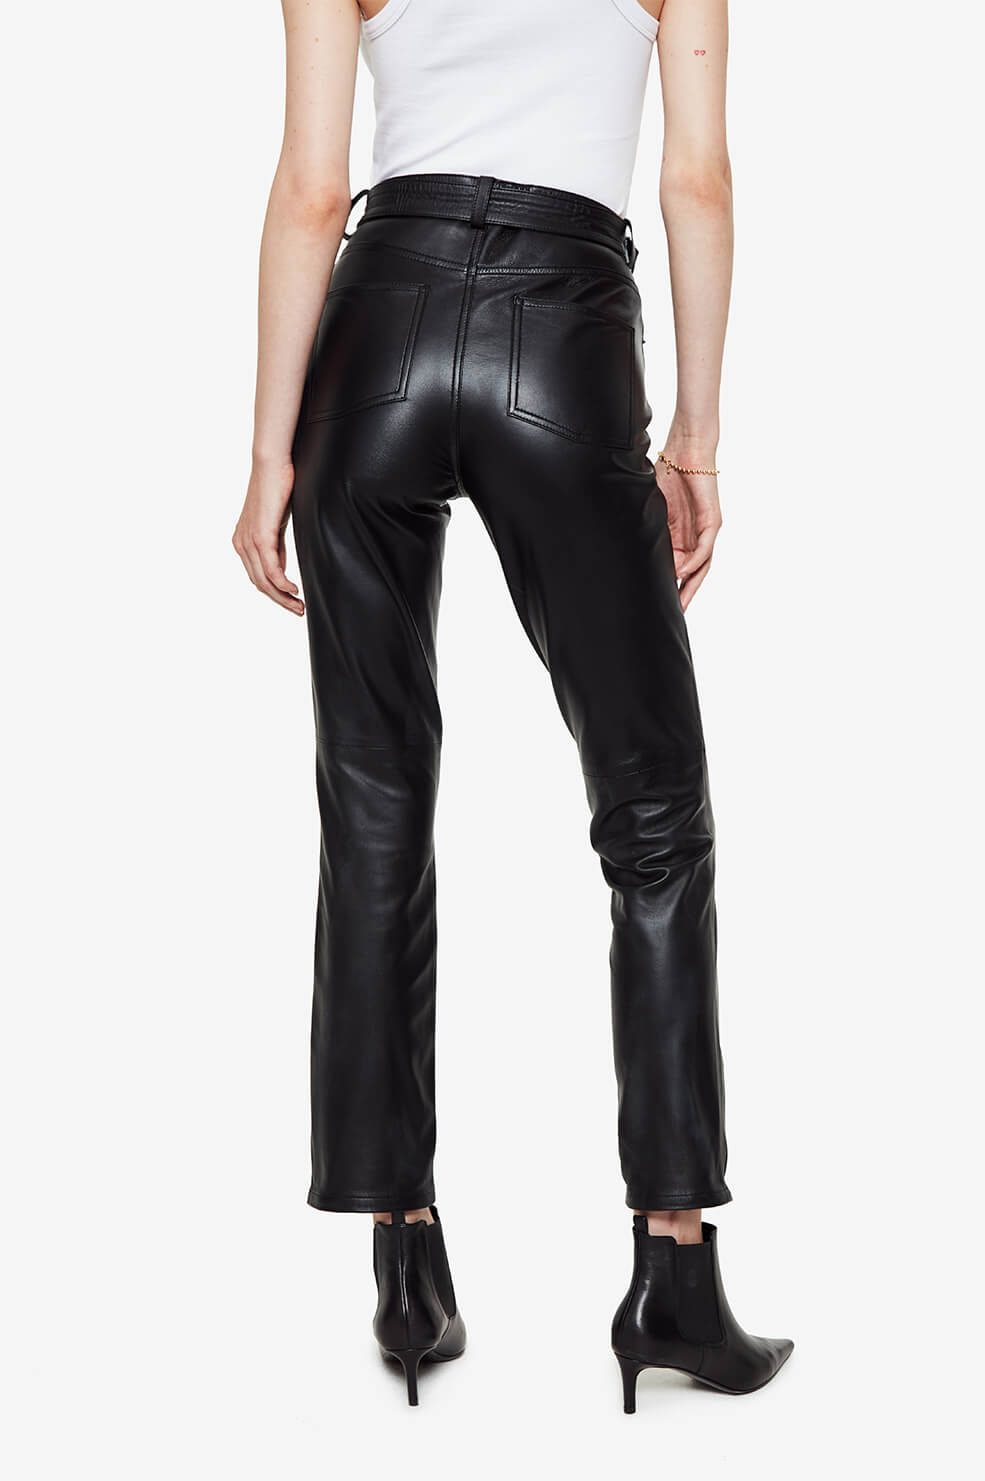 ANINE BING Connor Leather Pants - Black